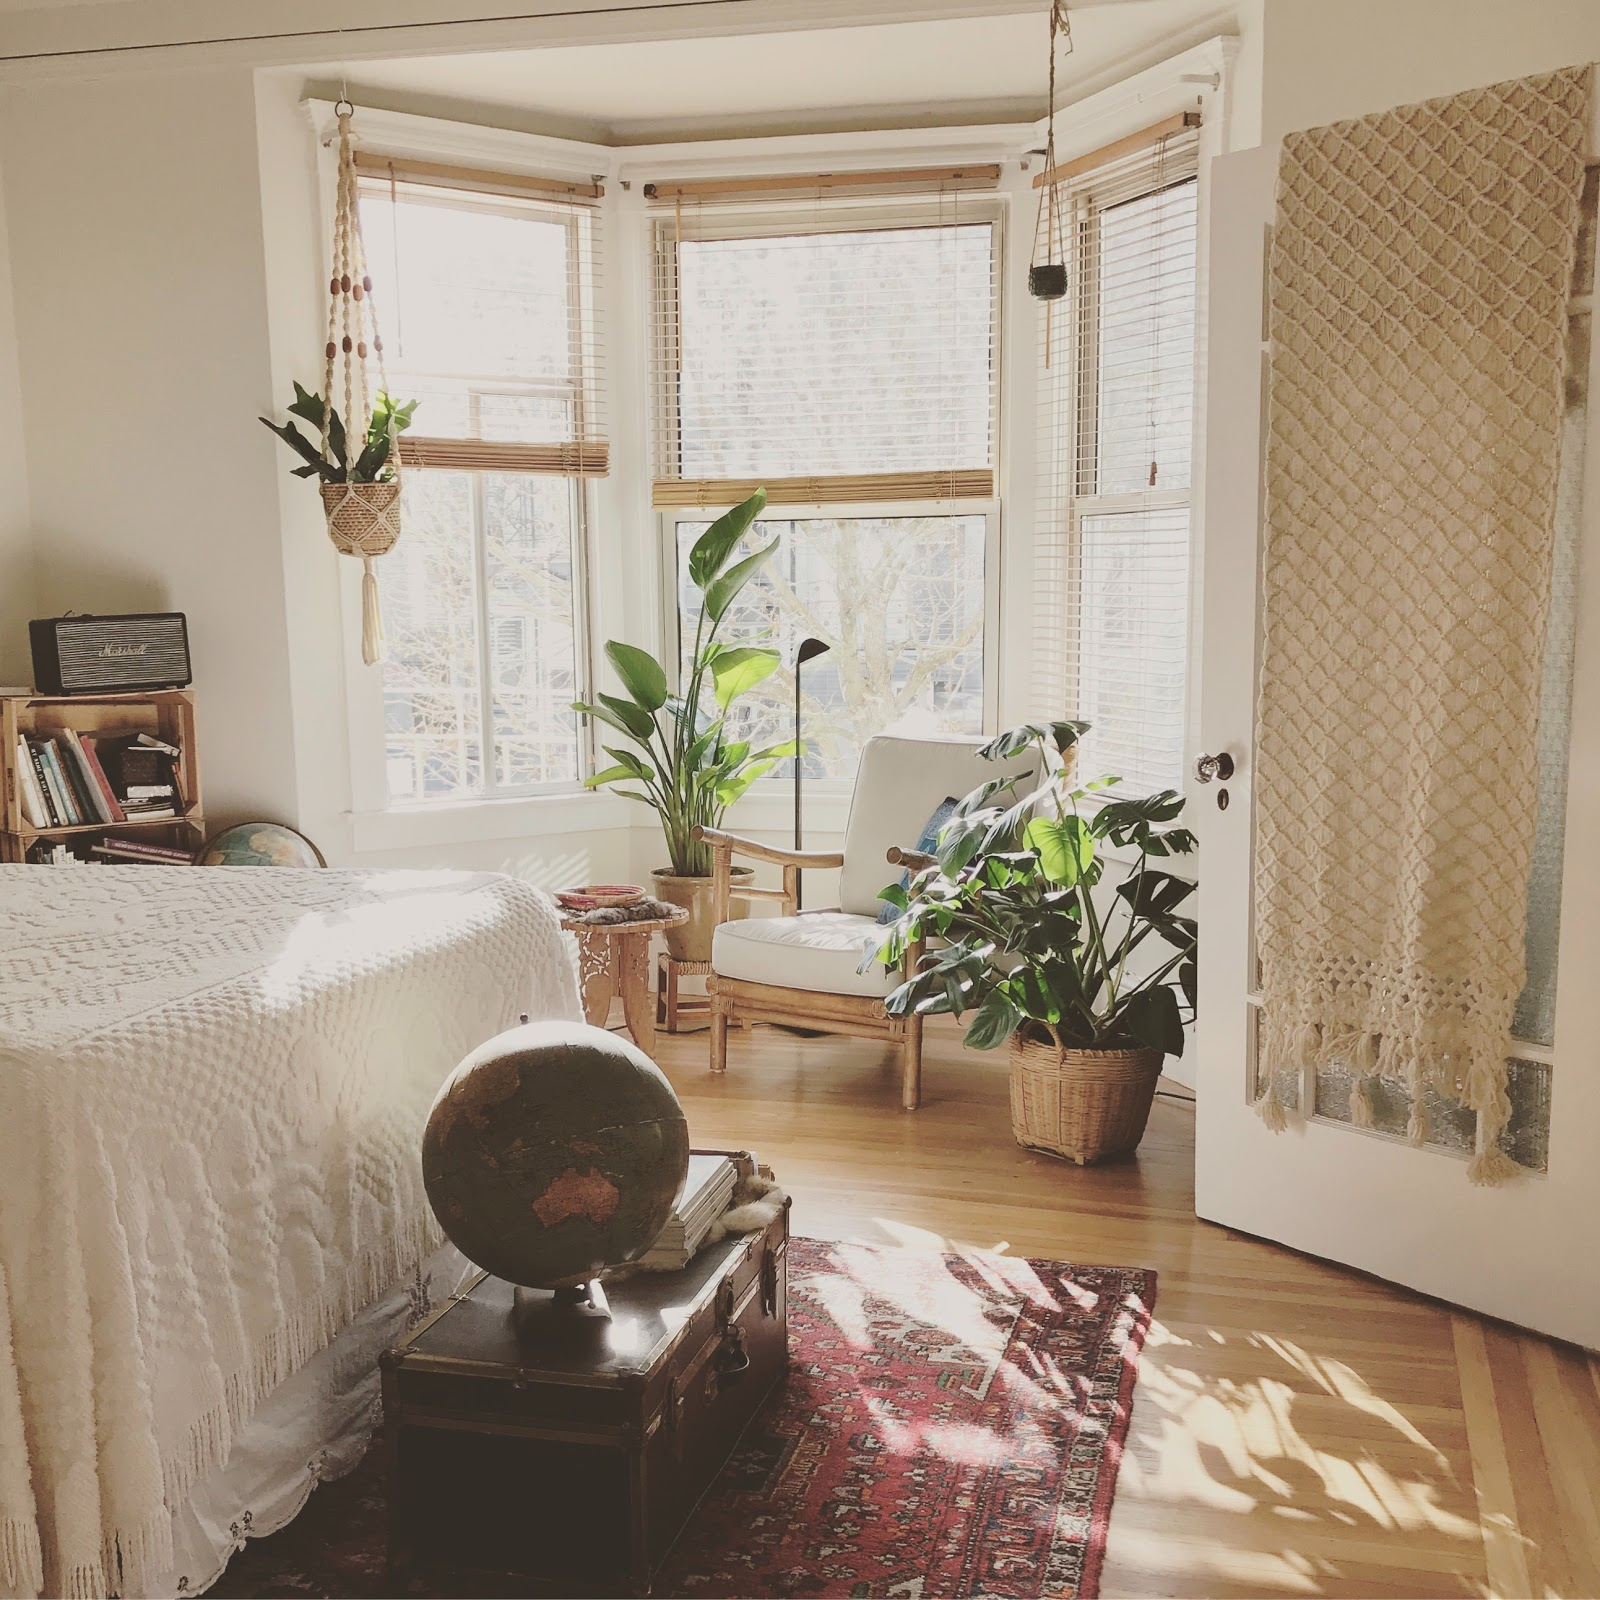 Apartment with plants and large bright windows